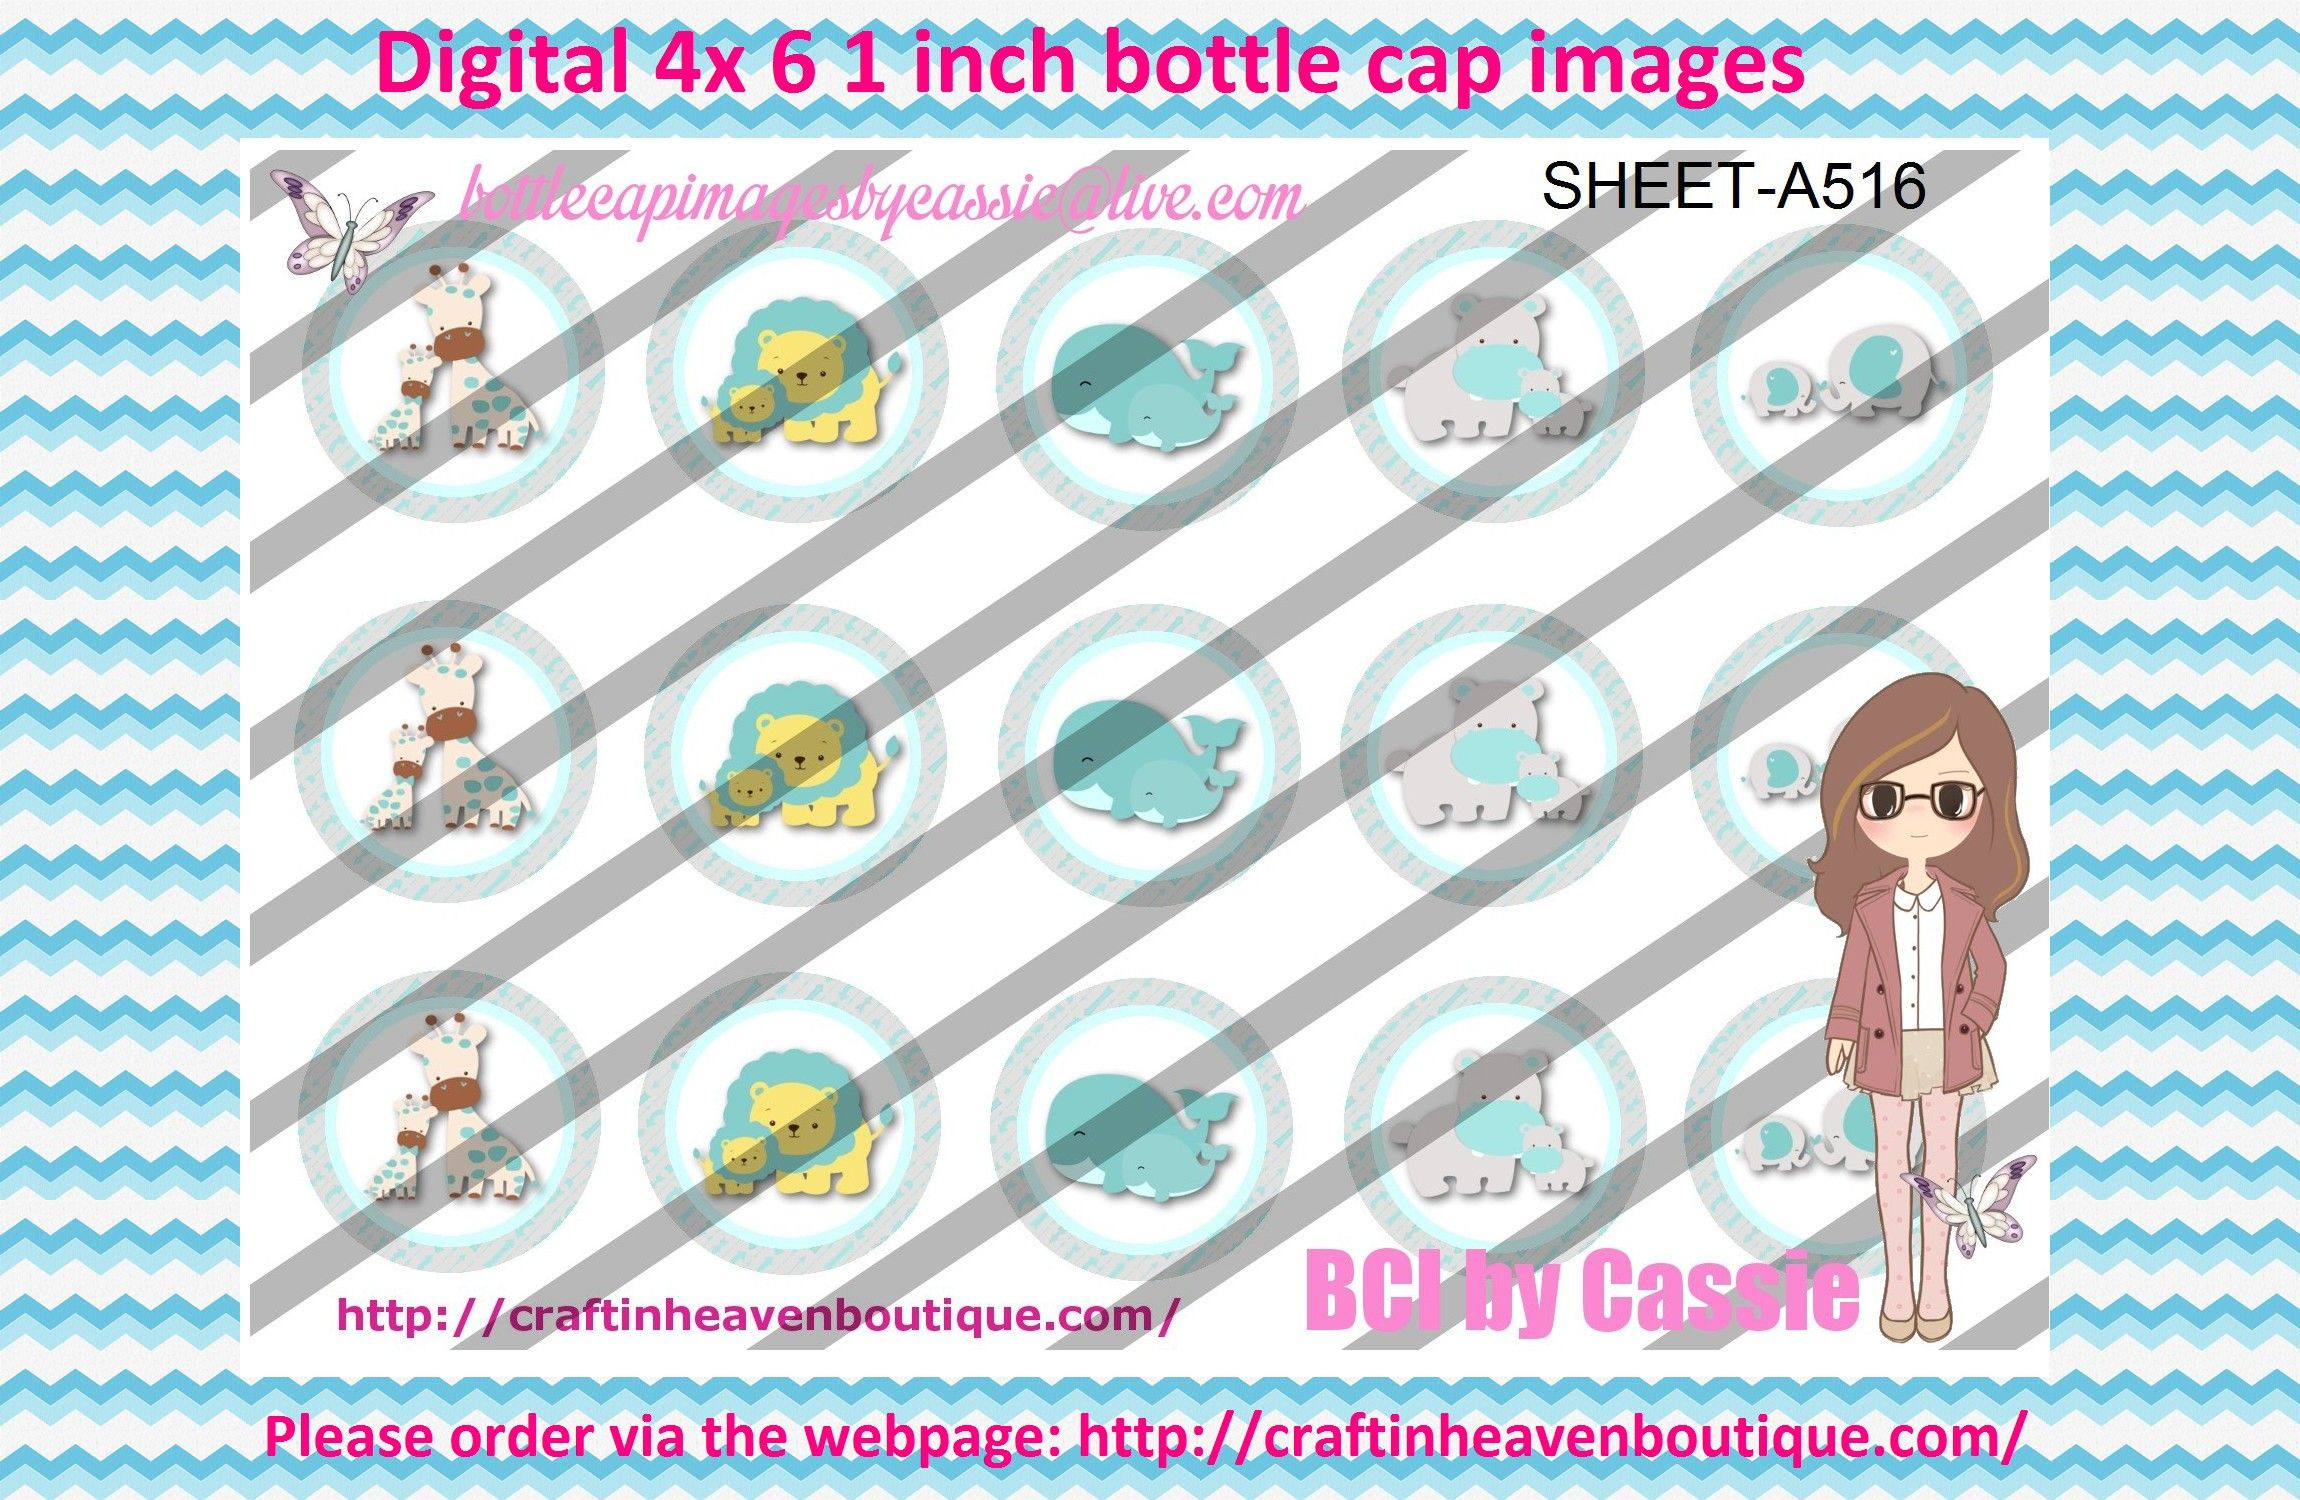 1' Bottle caps (4x6) Digital Baby Love Animals A516  Animal bottle cap images #animals #bottlecapimages #bottlecap #BCI #shrinkydinkimages #bowcenters #hairbows #bowmaking #ironon #printables #printyourself #digitaltransfer #doityourself #transfer #ribbongraphics #ribbon #shirtprint #tshirt #digitalart #diy #digital #graphicdesign please purchase via link  http://craftinheavenboutique.com/index.php?main_page=index&cPath=323_533_42_117